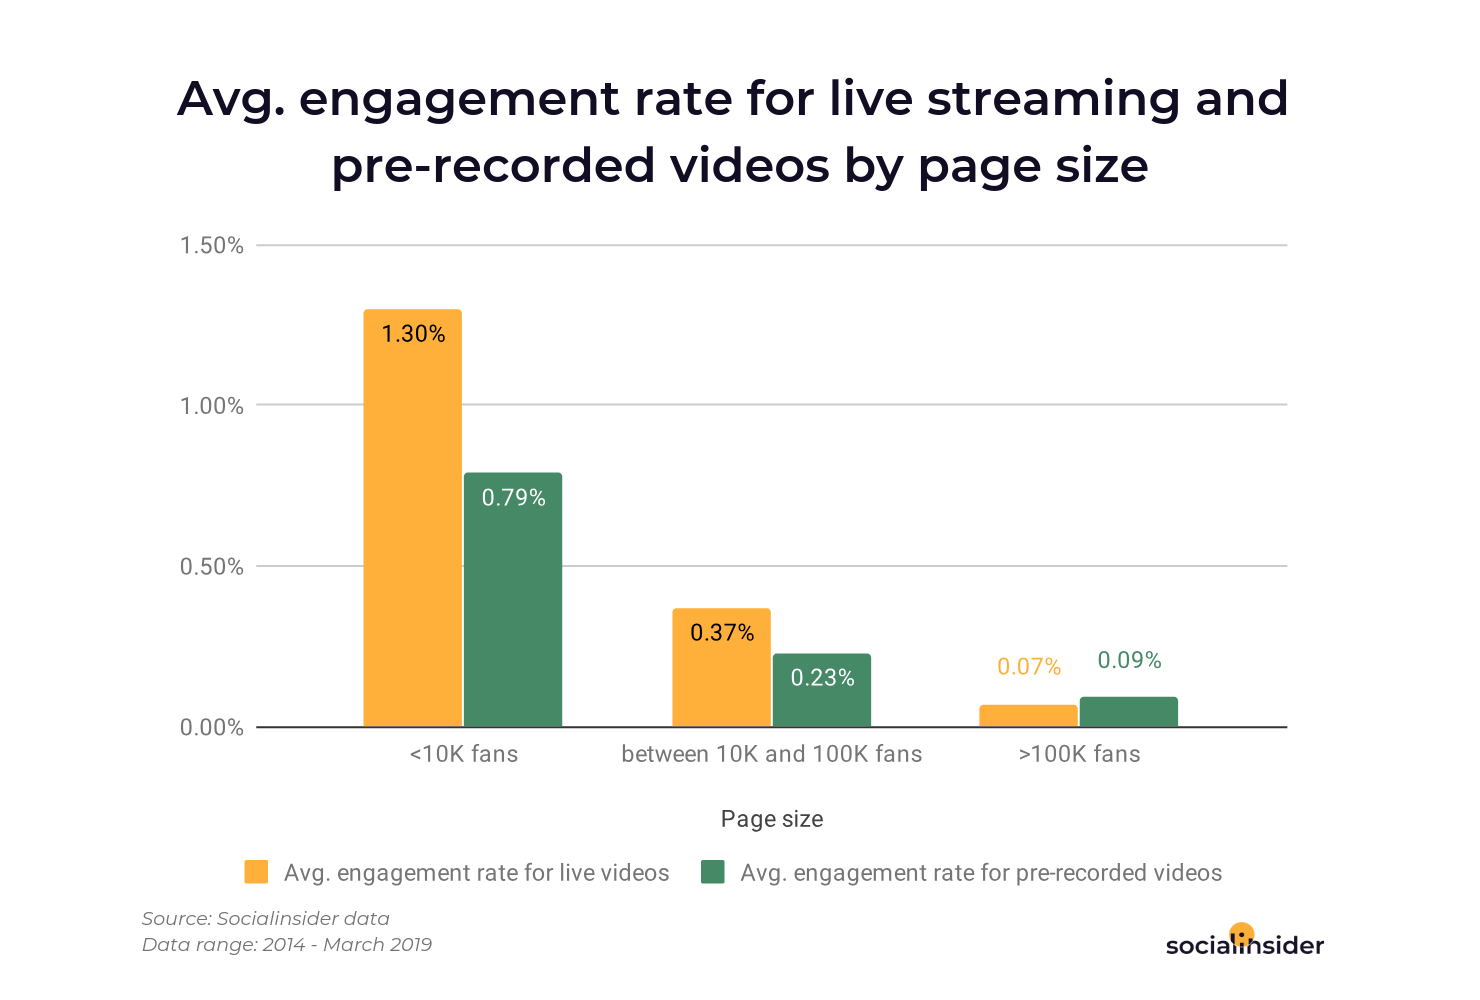 Engagement for live streaming compared with pre-recorded videos